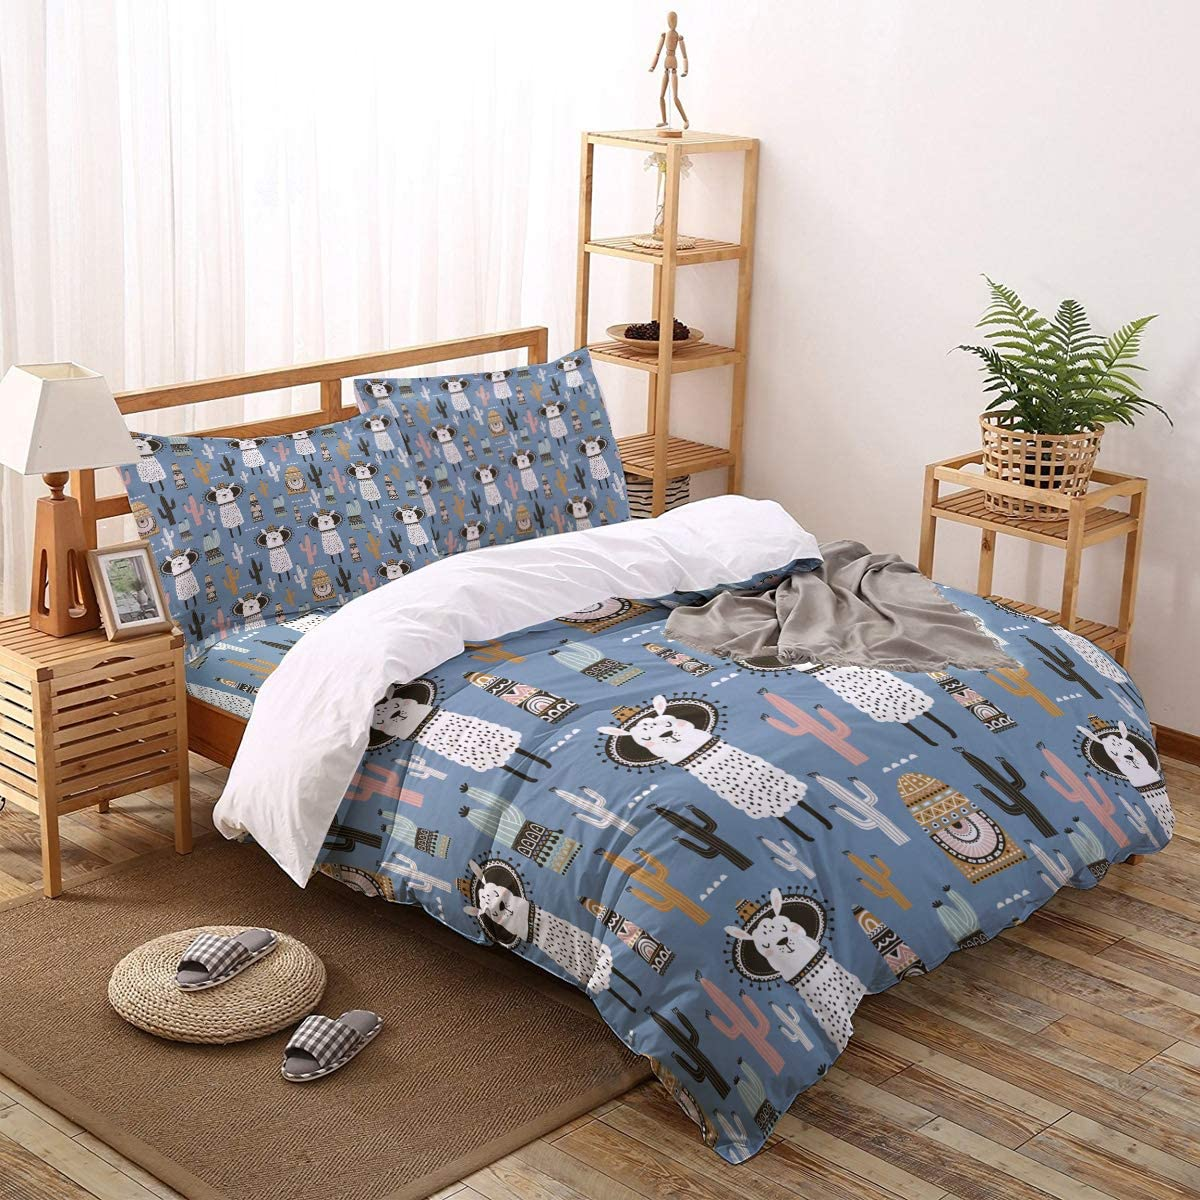 Fangship 4 Virginia Beach Mall Pieces Special price for a limited time Duvet Cover Bedding Alpaca Set Blu Cute Cactus